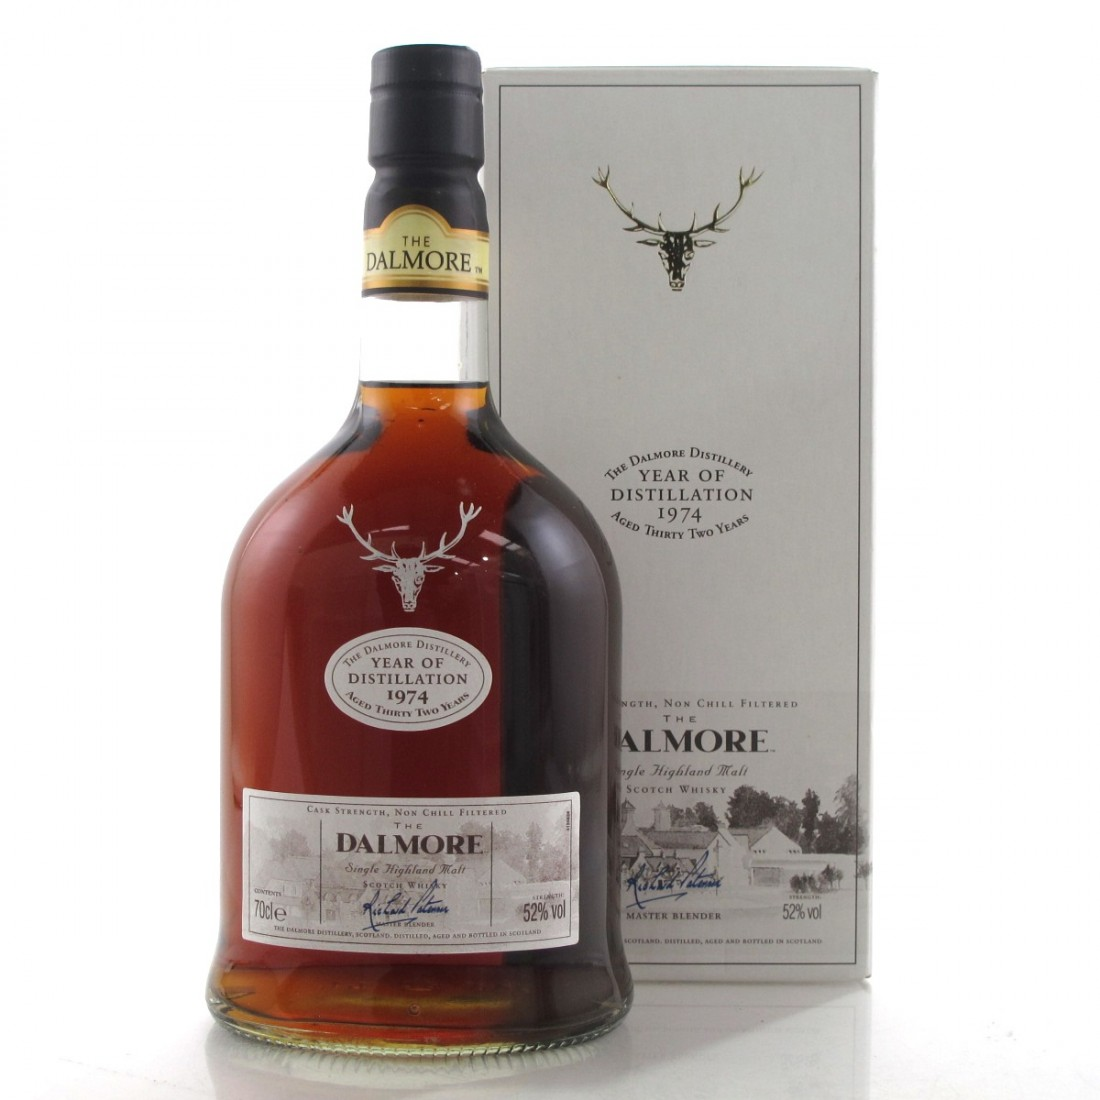 Dalmore 1974 32 Year Old